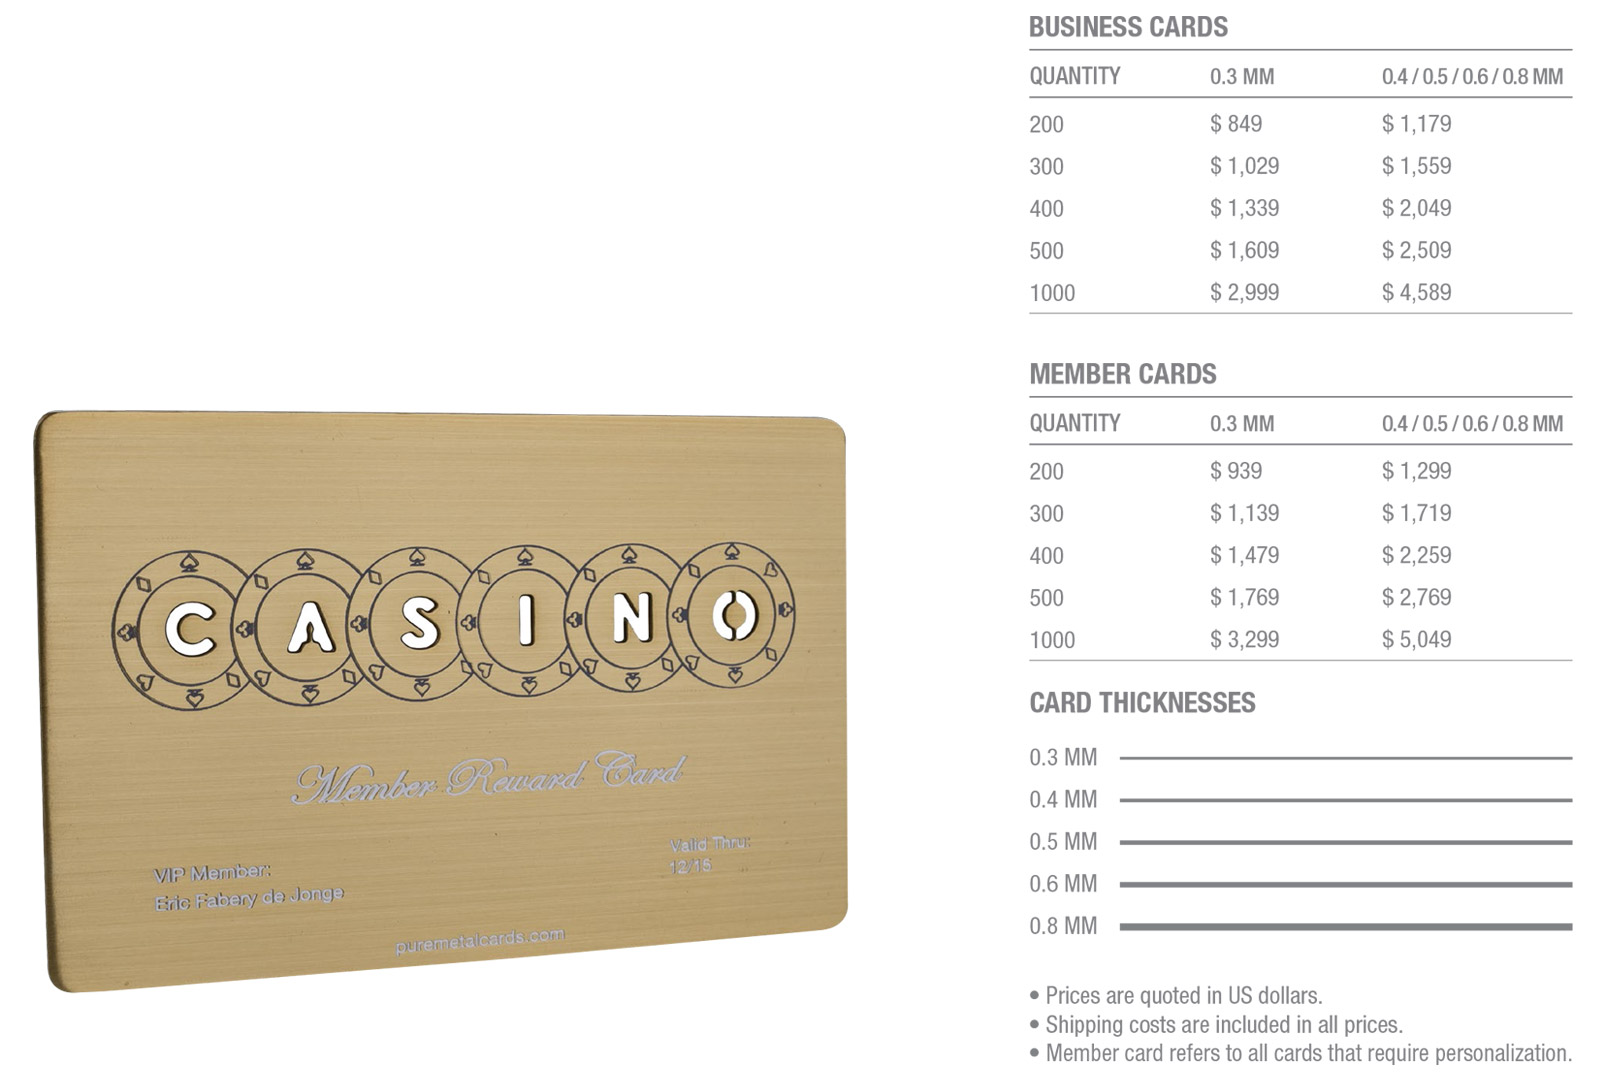 Brass-(Gold)-Brushed-Cards-Pricing-Table